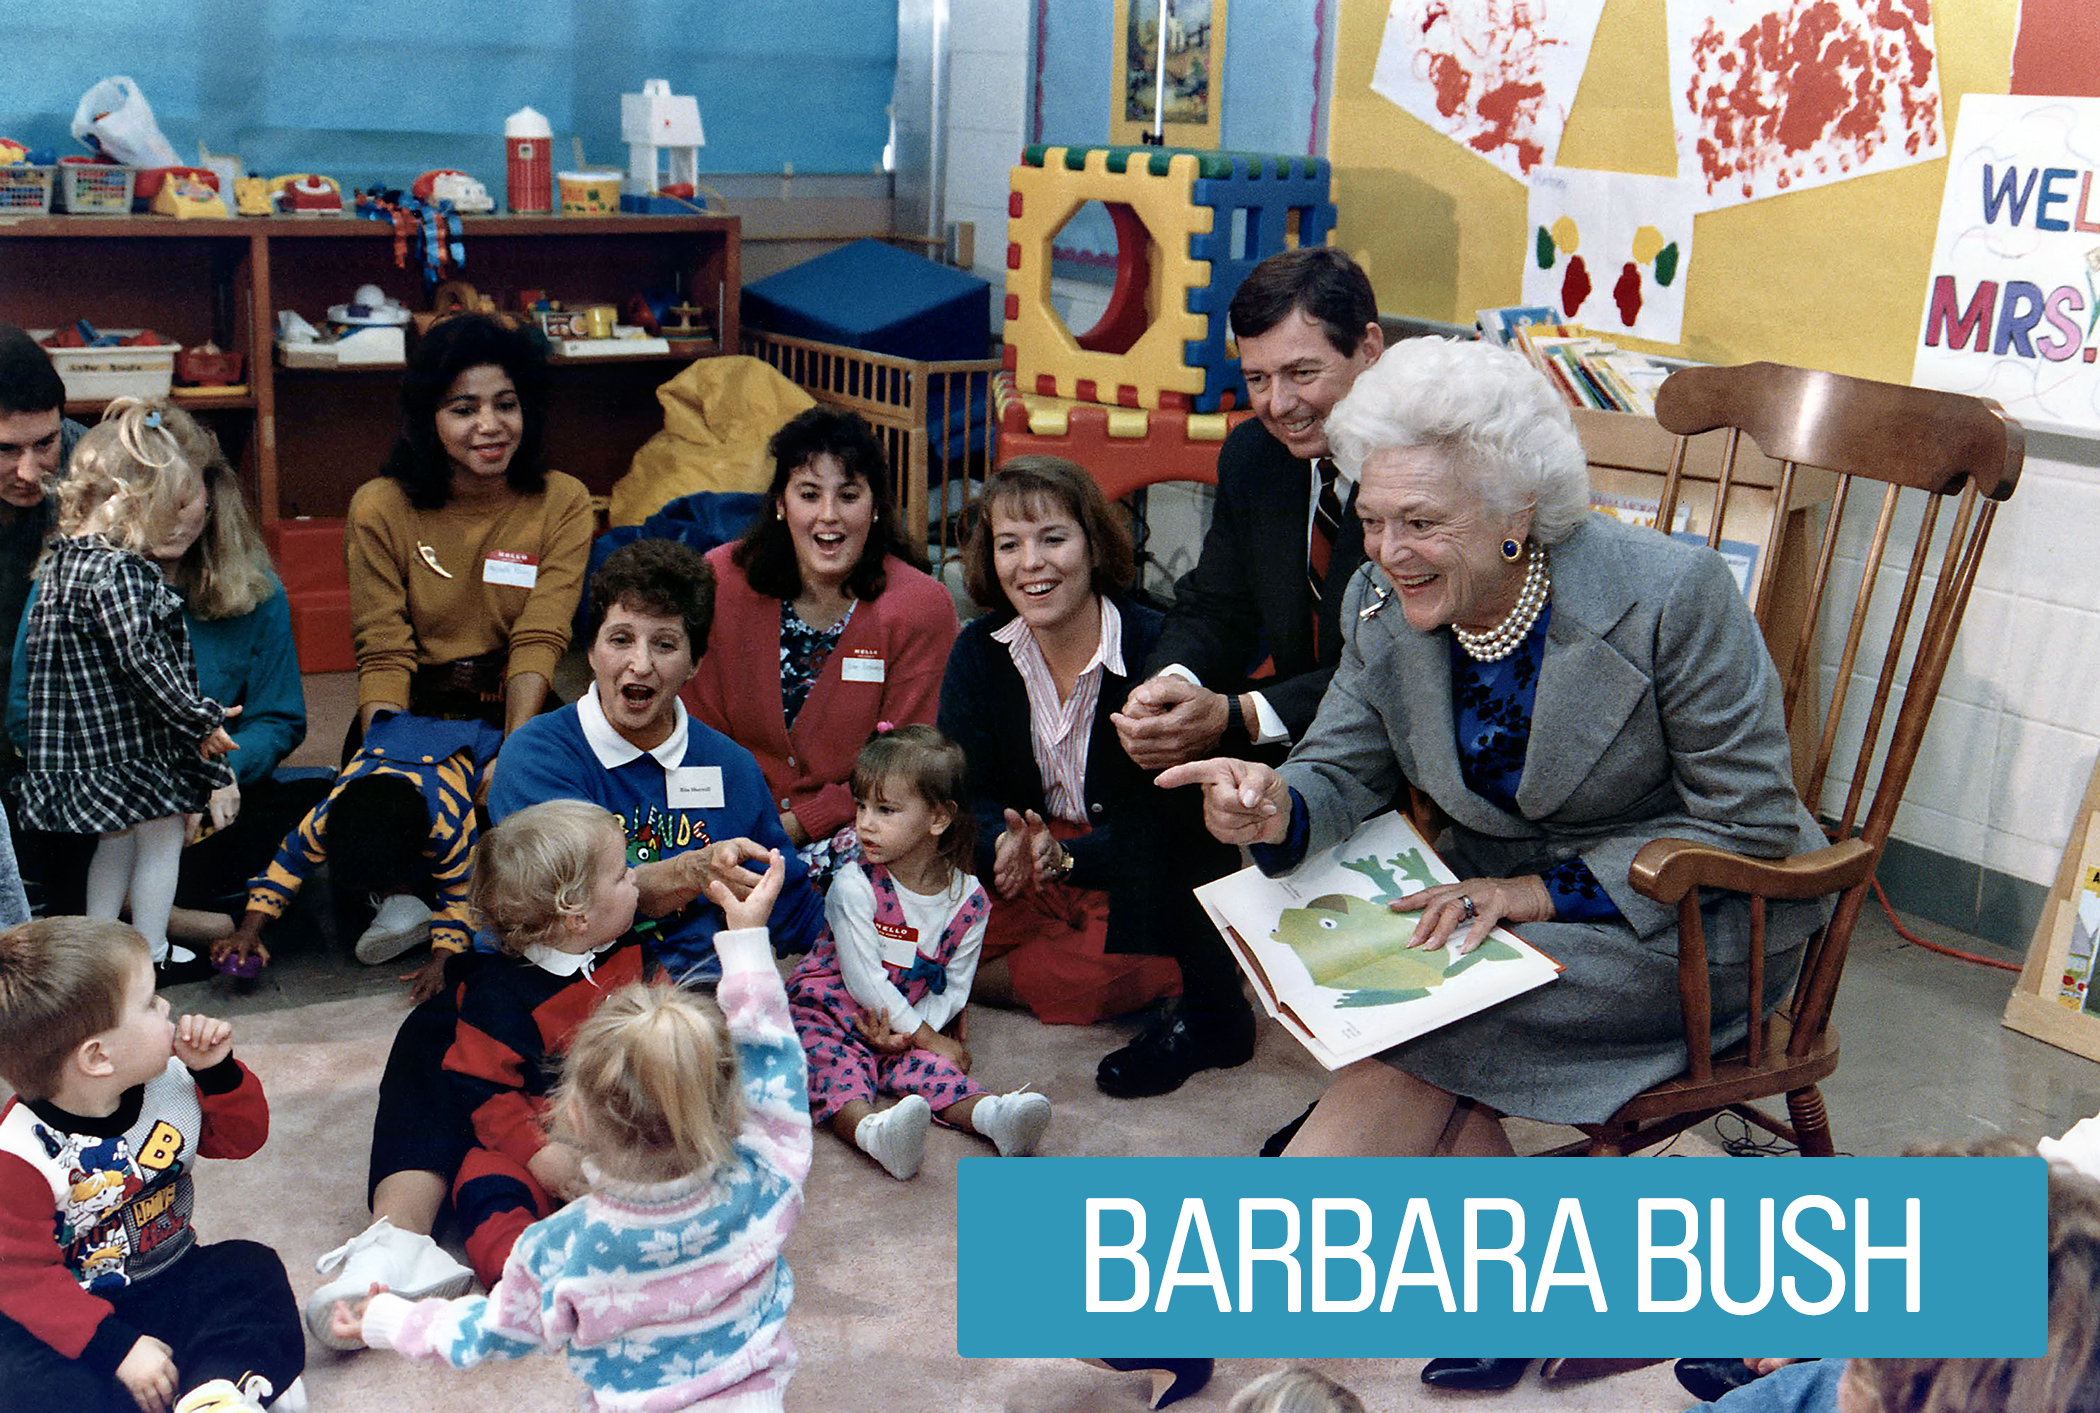 First Lady Barbara Bush sought to reduce illiteracy in America. She tapped a wide network and established her own grant-soliciting foundation to fund literary programs.  She saw problems like unemployment, homelessness and crime as being rooted in illiteracy. She even started her own radio story time for kids.